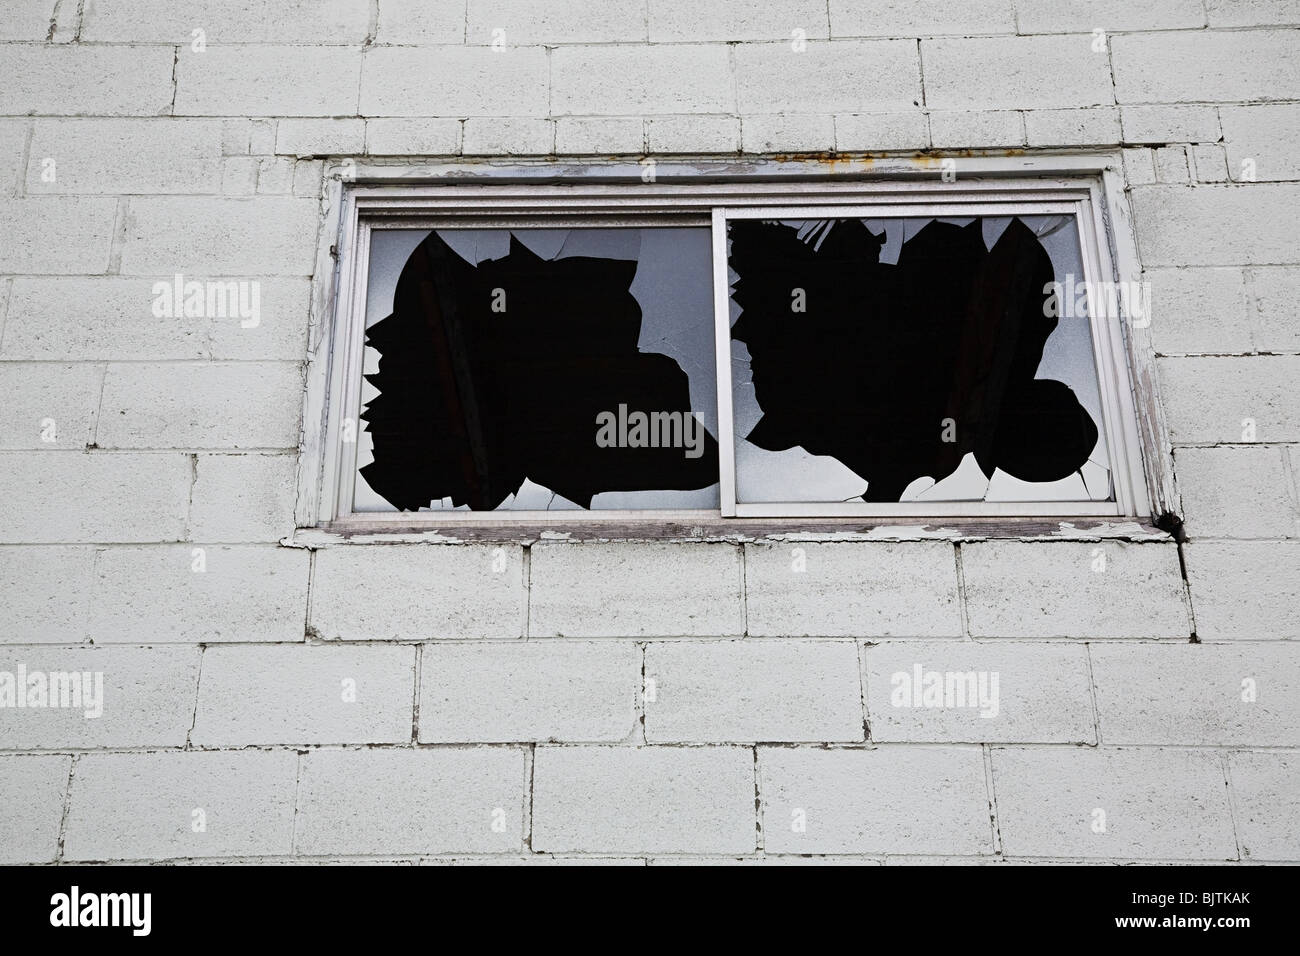 Building with broken windows - Stock Image